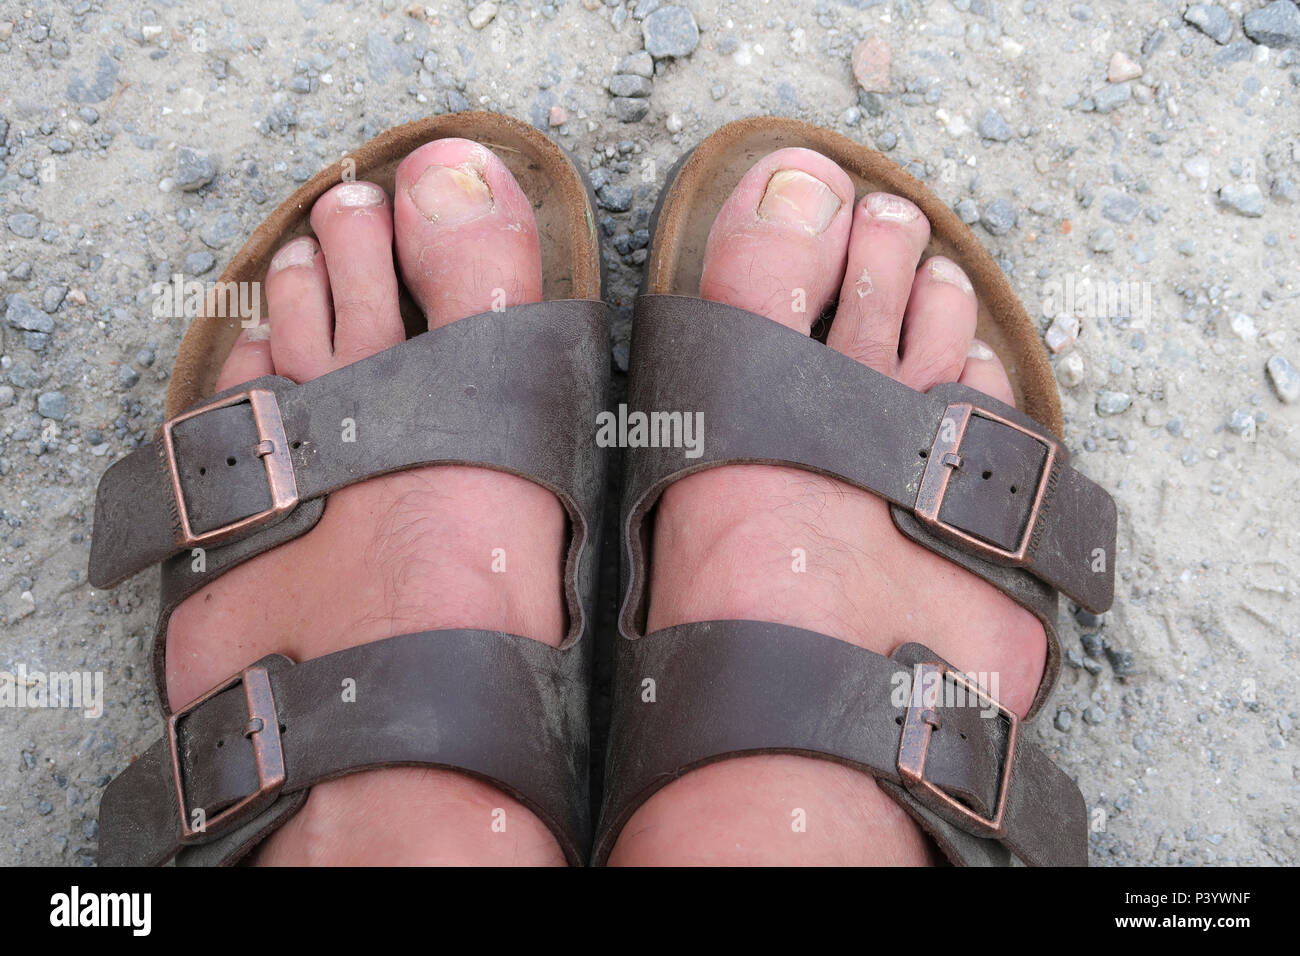 0f12d8be9 Ugly Feet Stock Photos   Ugly Feet Stock Images - Alamy